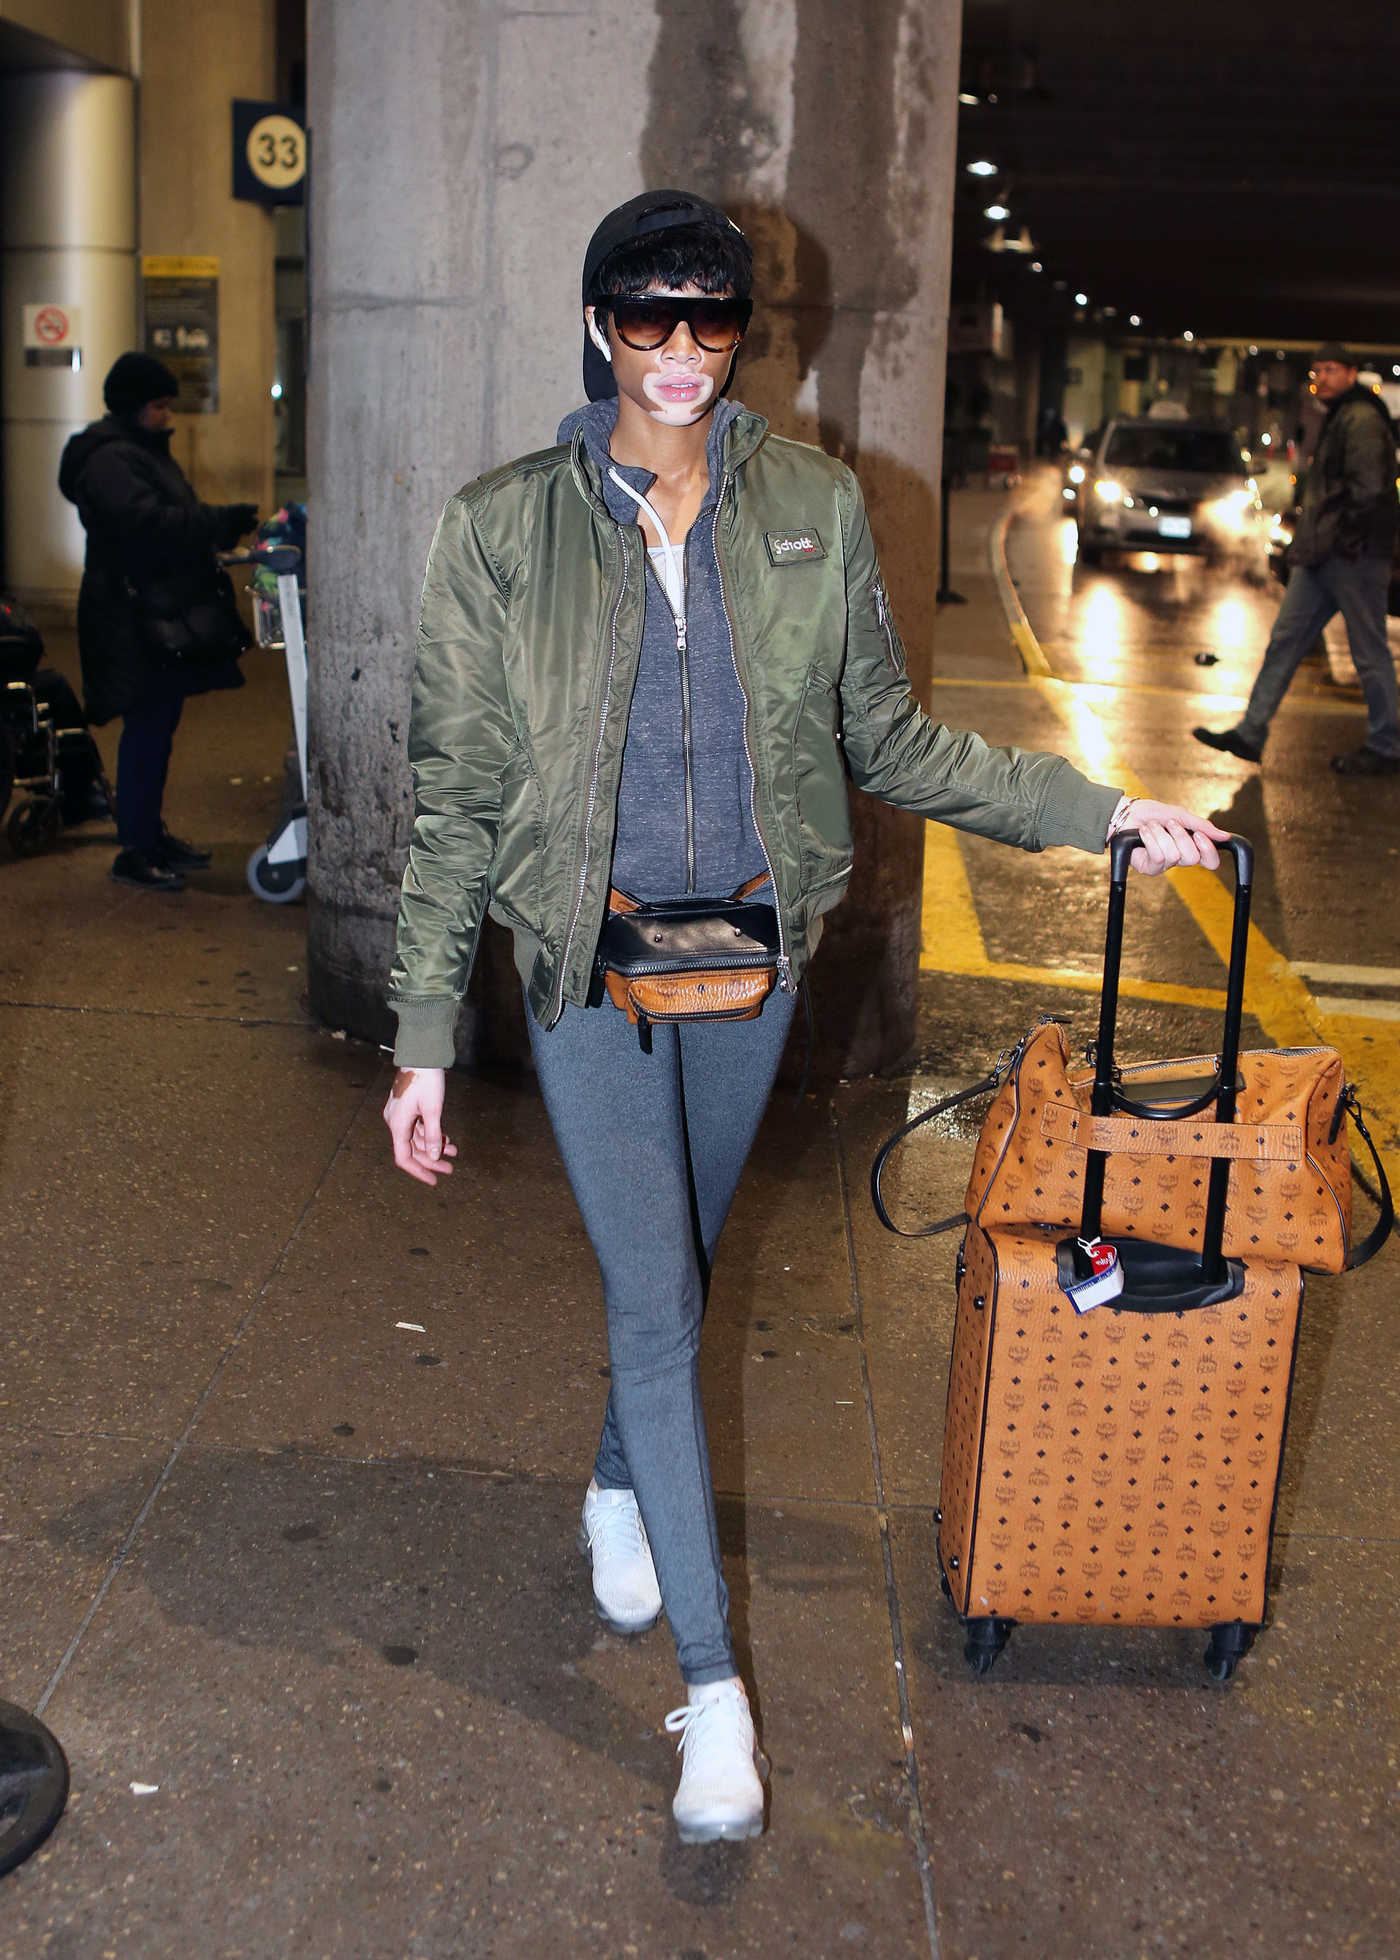 Winnie Harlow Wears a Schott NYC Green Bomber Jacket at Pearson International Airport in Toronto 03/28/2018